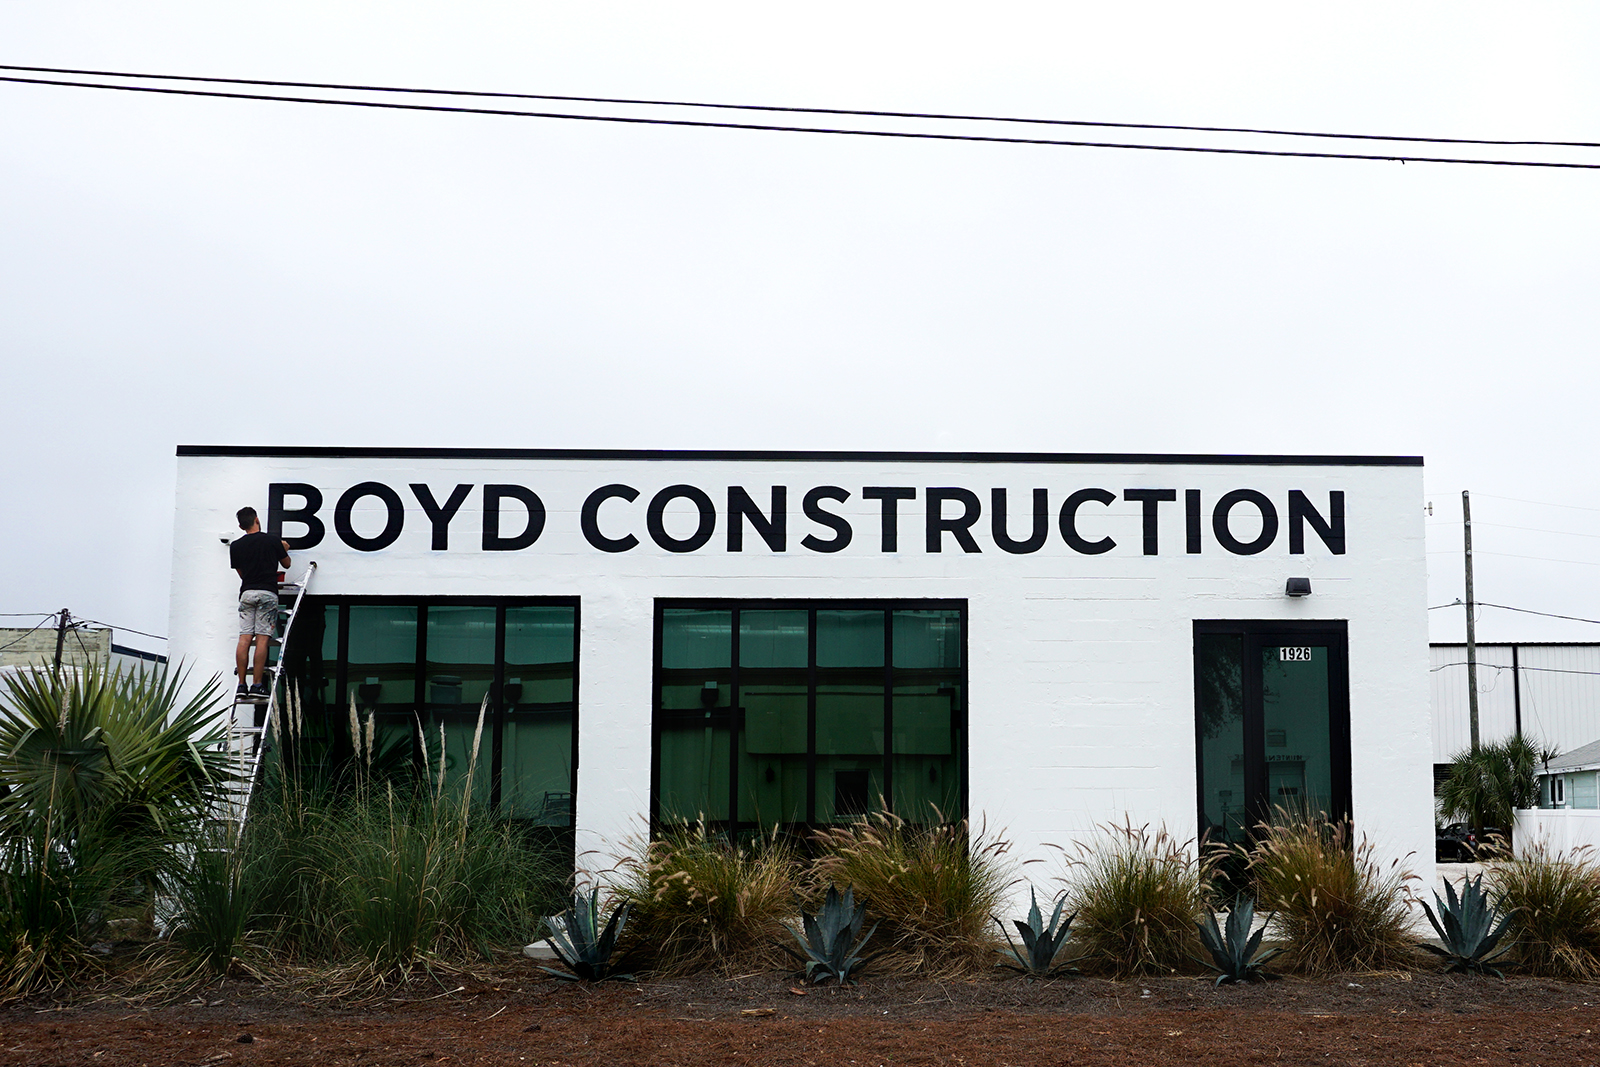 Boyd-Construction-Leo-Gomez-Studio-Hand-Painted-Sign-02.jpg